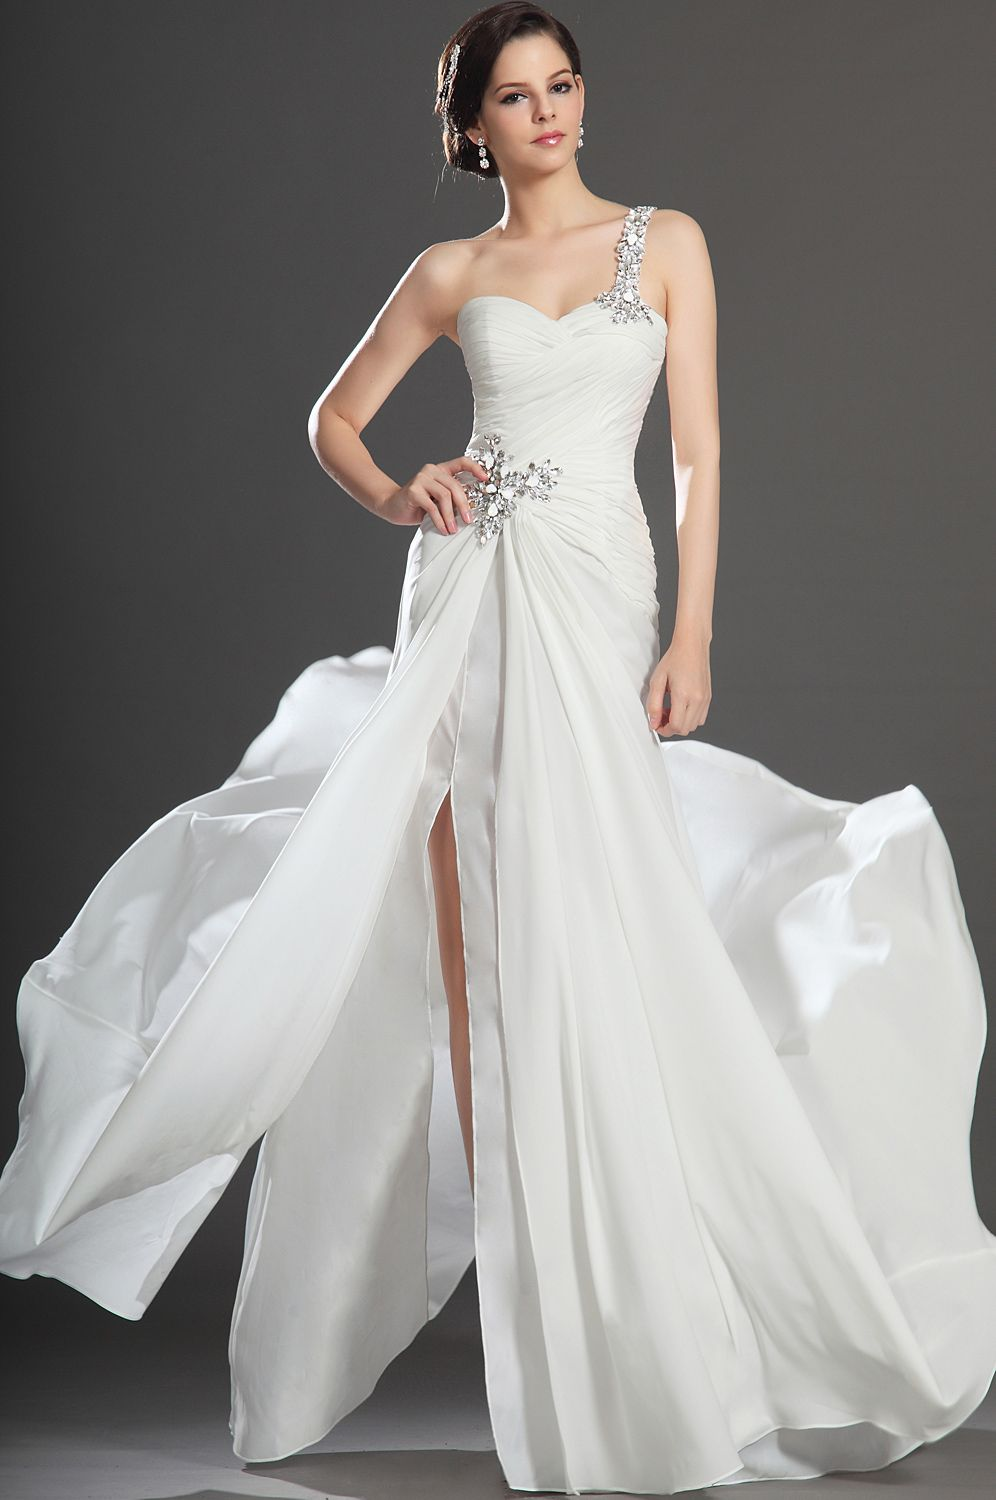 Images of Simple White Evening Gowns - Reikian